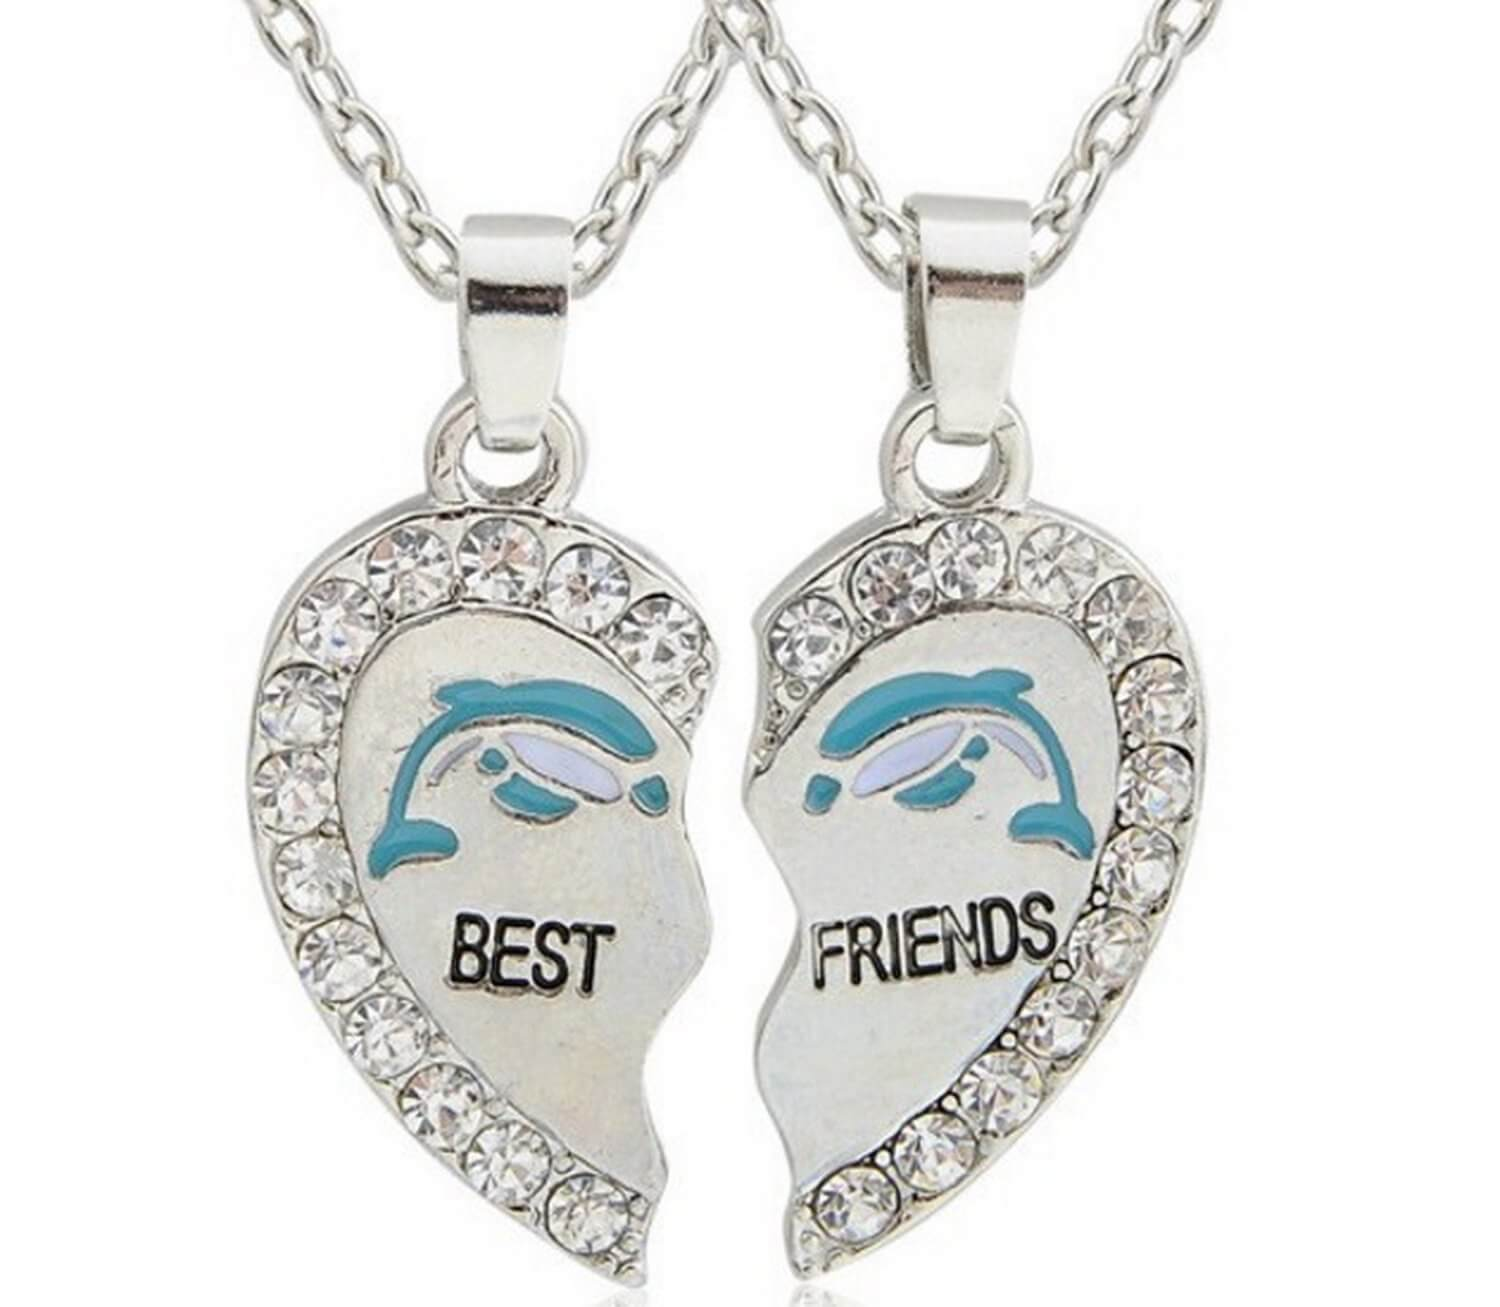 yang friend for yin necklace lockets globe best gift friendship couple l forever jewelry friends personalized